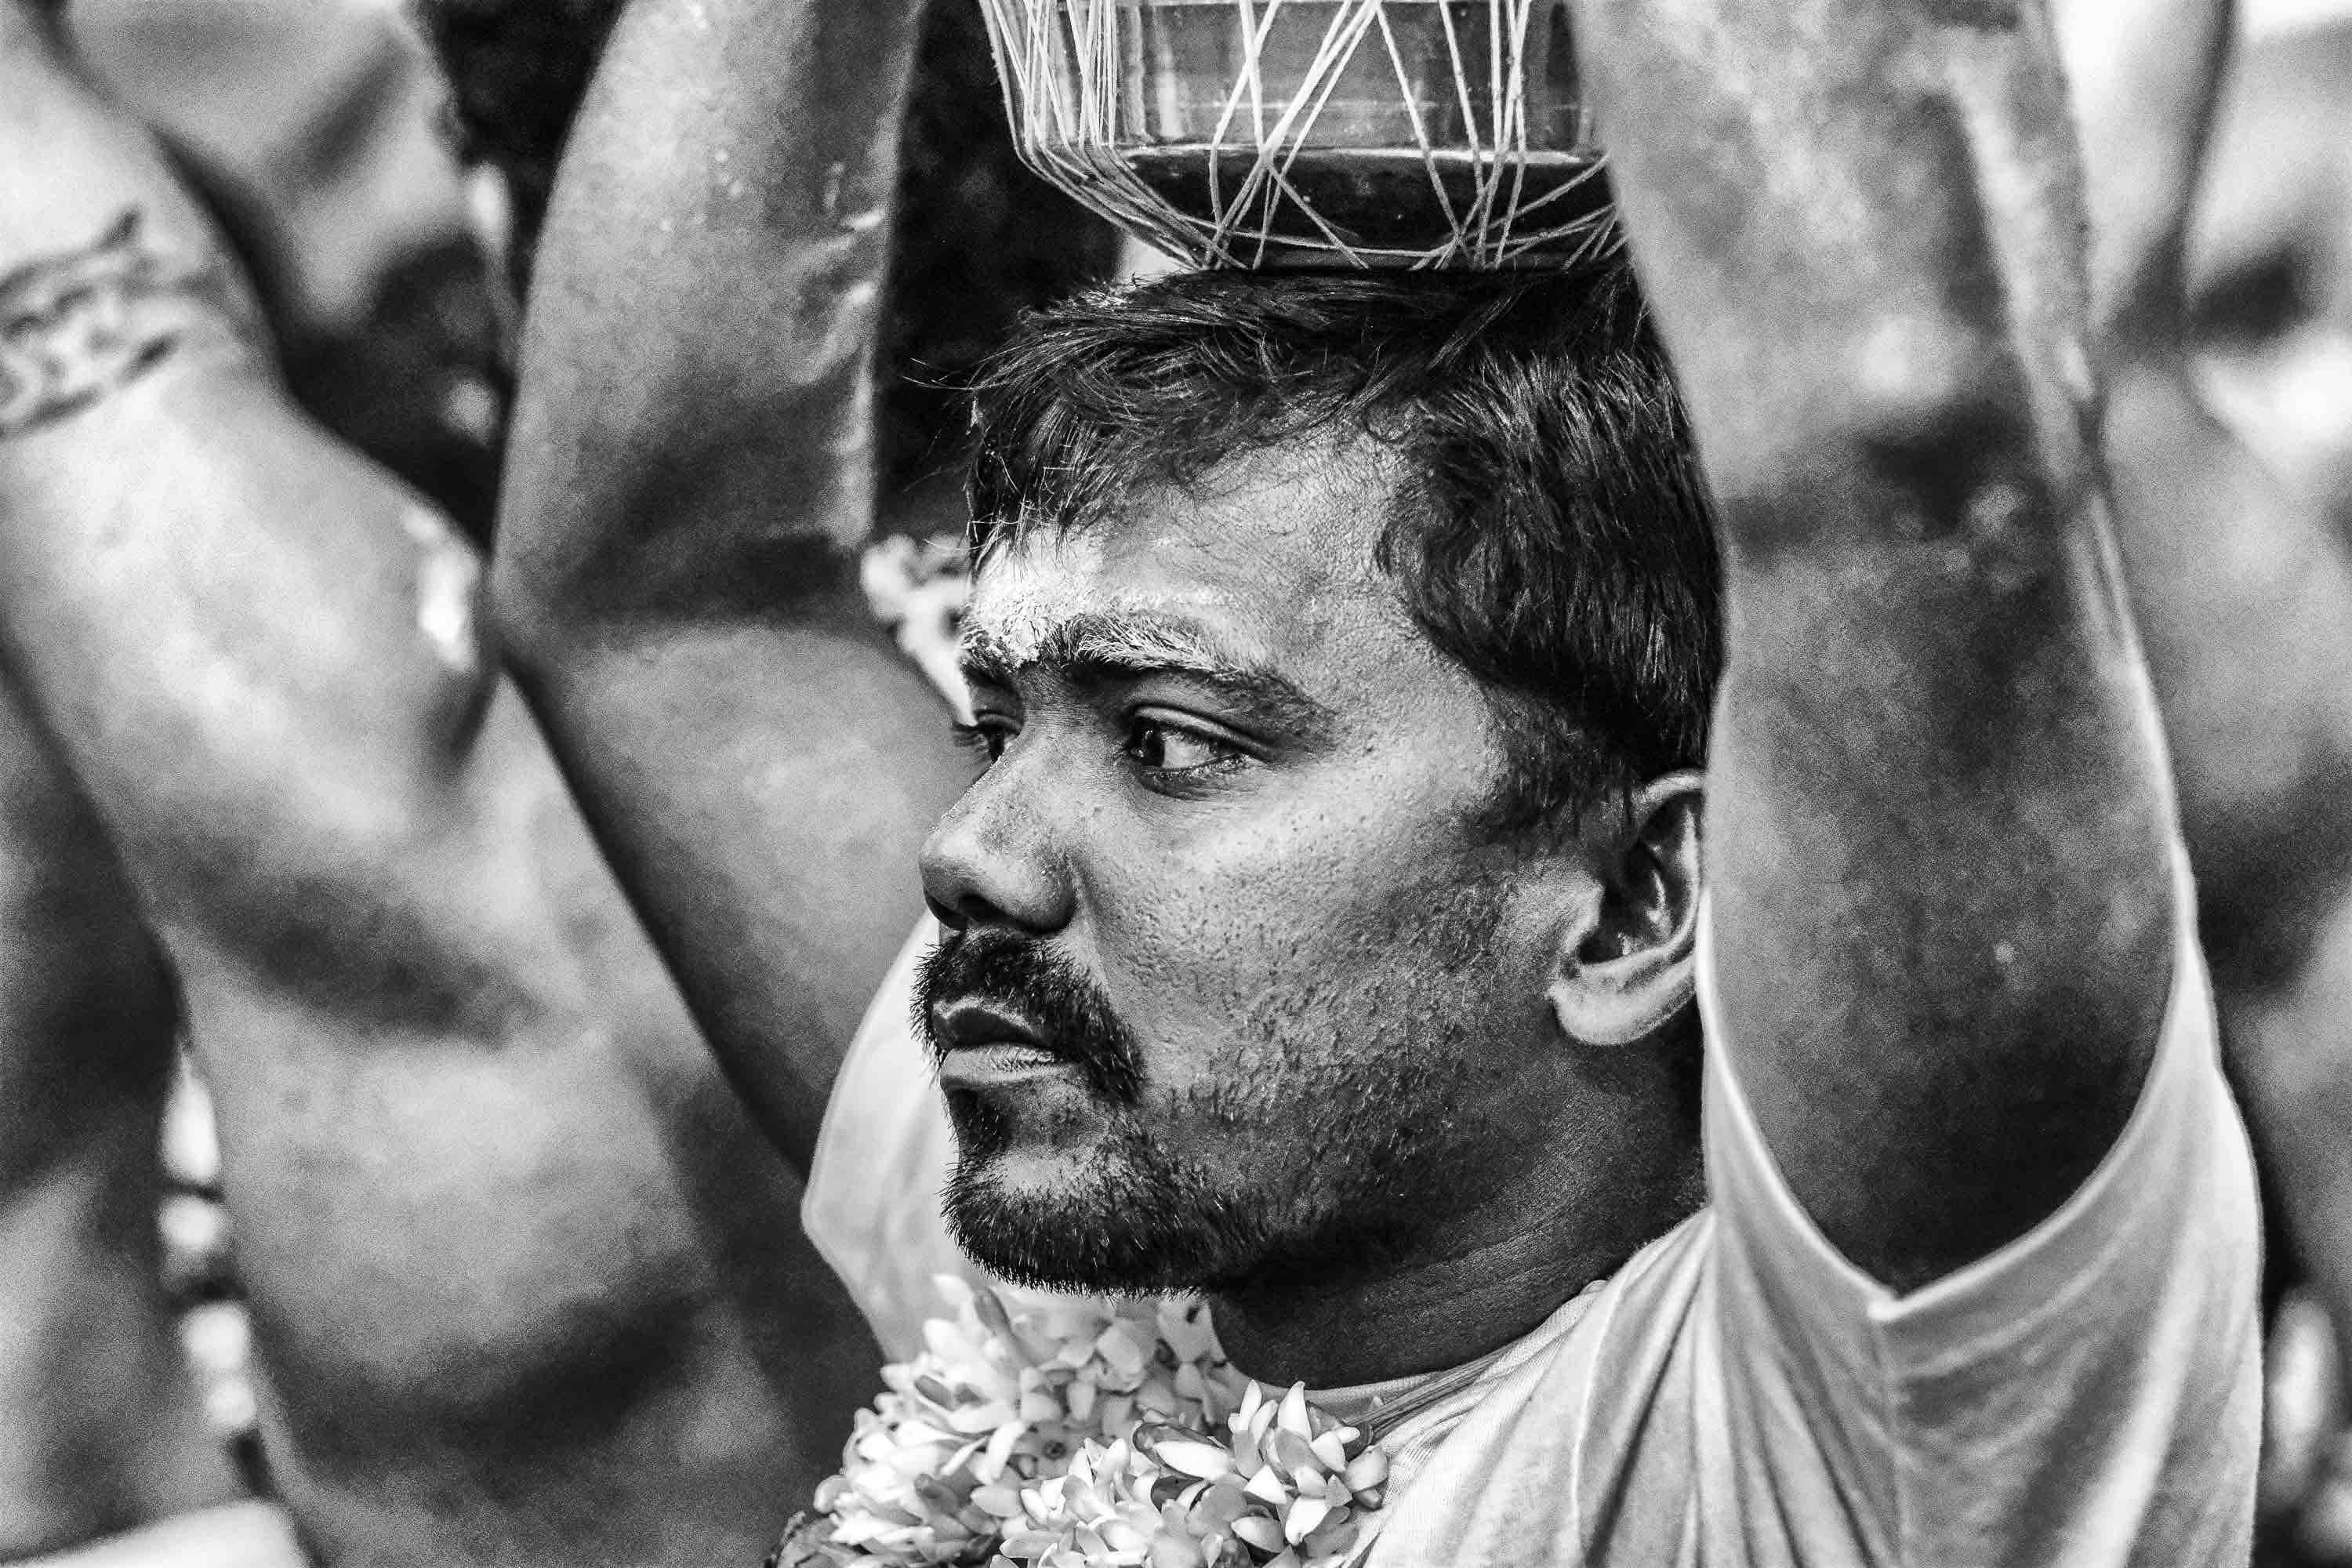 man ready wilk pot on the head Little India Thaipusam Festival hindu Singapore photography jose jeuland documentary event